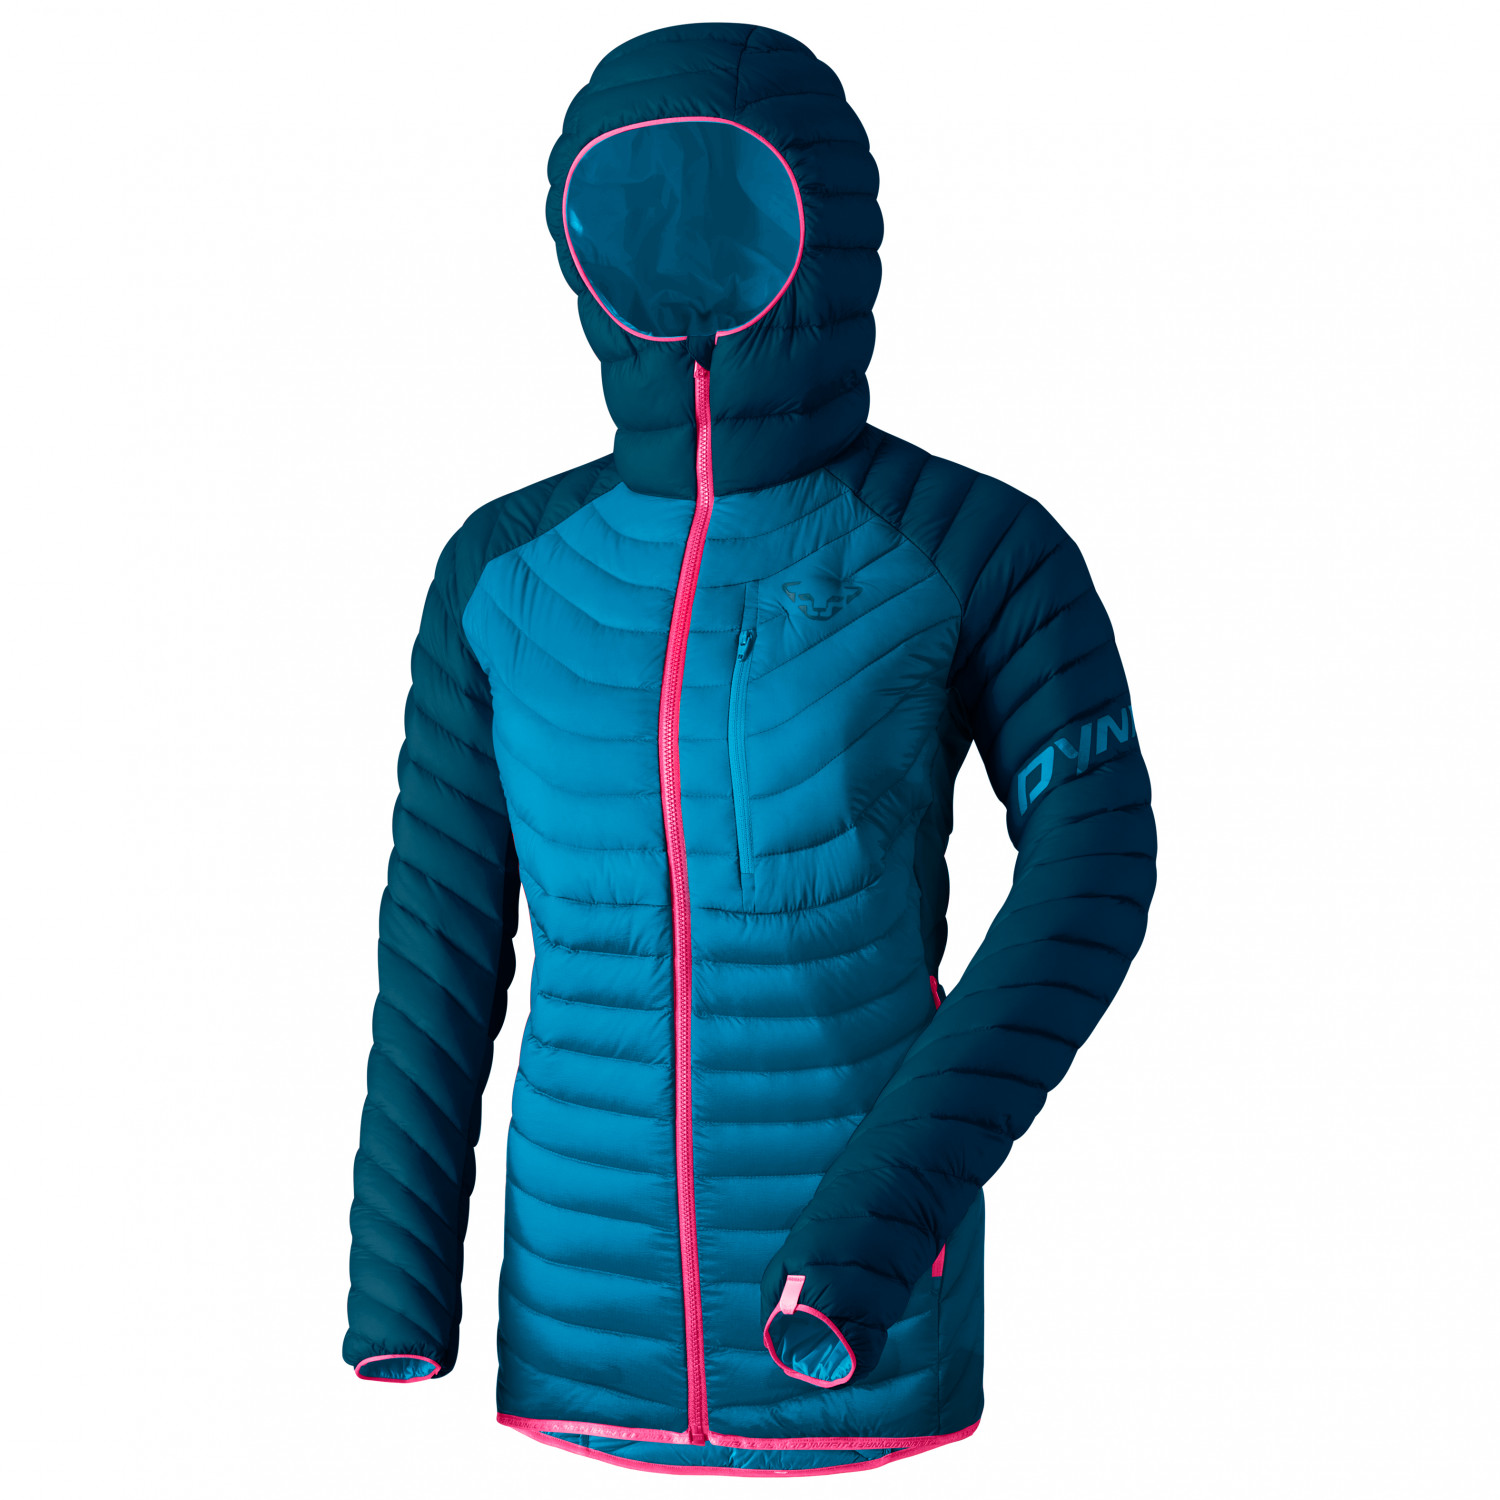 Dynafit Women's Radical Down Hood Jacket Daunenjacke